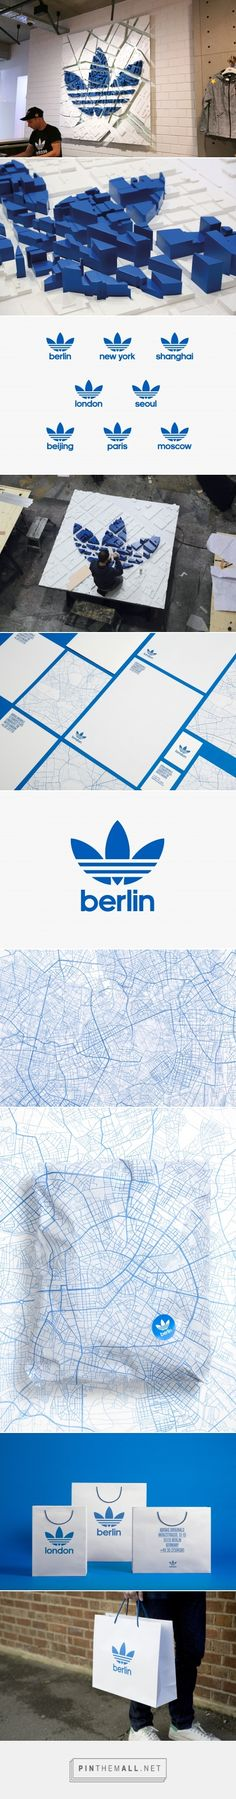 Adidas Originals Branding by Here Design | Fivestar Branding – Design and Branding Agency & Inspiration Gallery